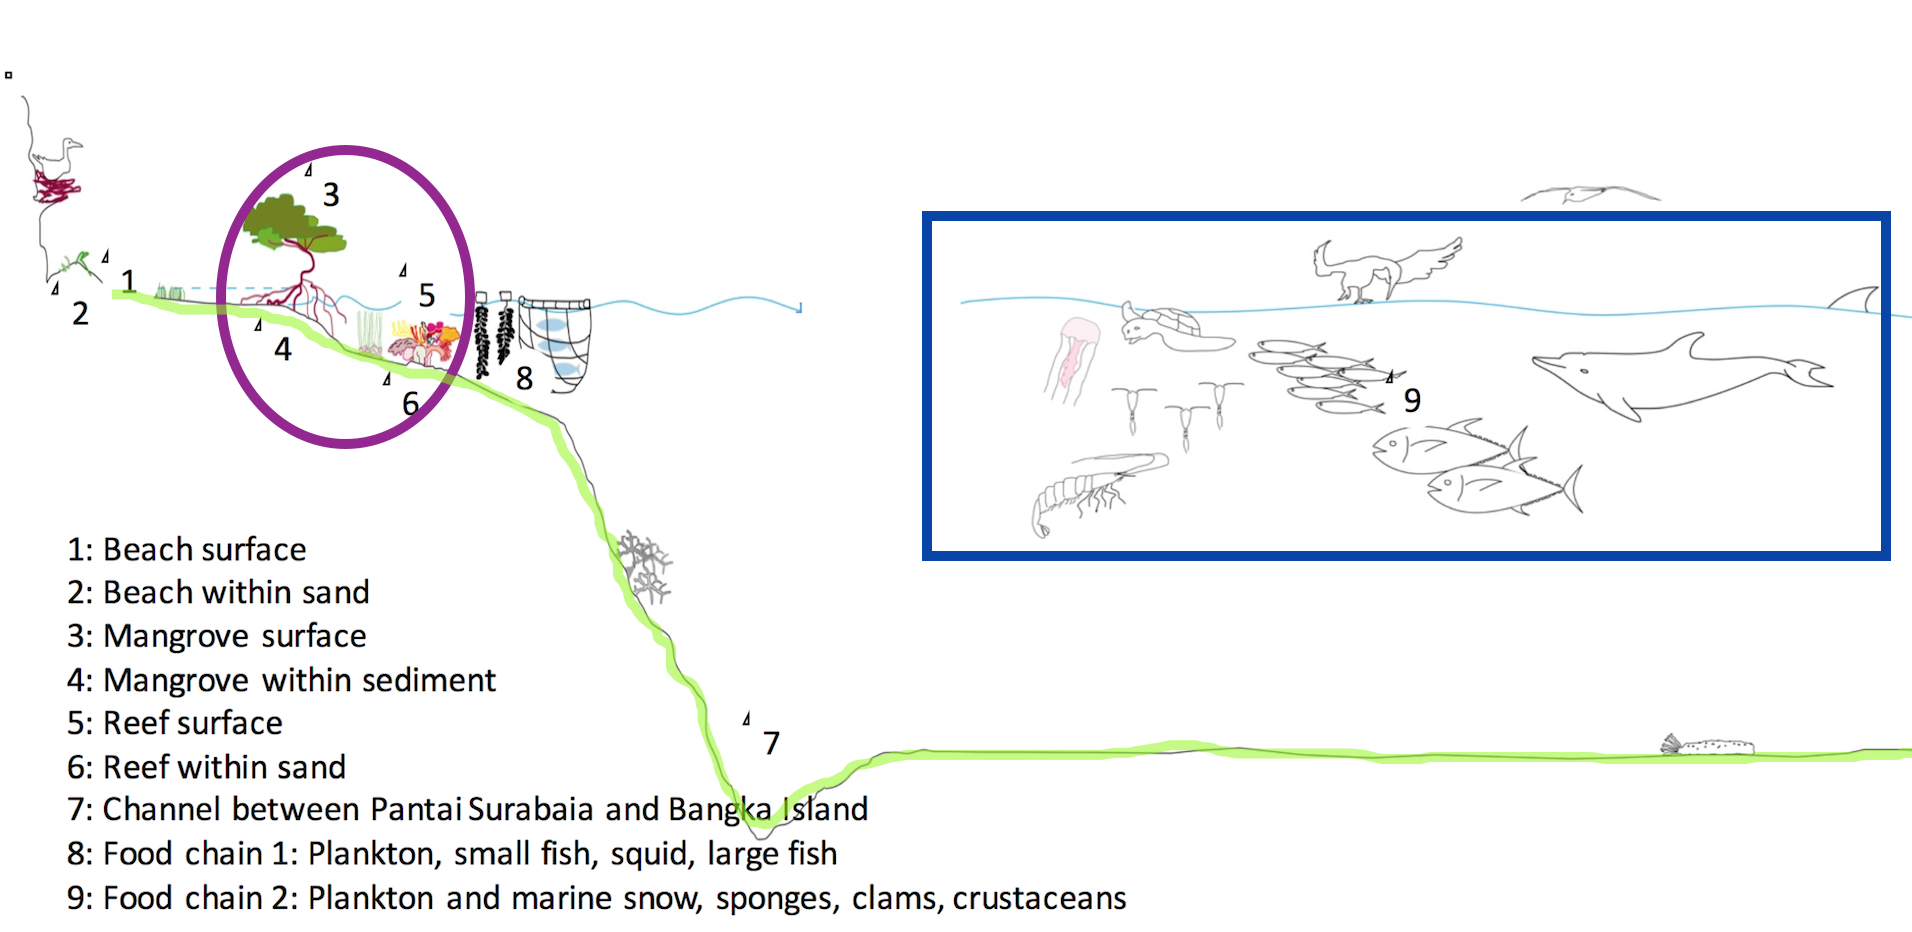 Schematic view of typical marine situations that plastic debris have been found. Compartments of interest: Blue frame: Part A, the pelagic realm, green hatched line: Part B, beaches and sediments, purple ellipse: mangrove, seagrass beds and reefs.